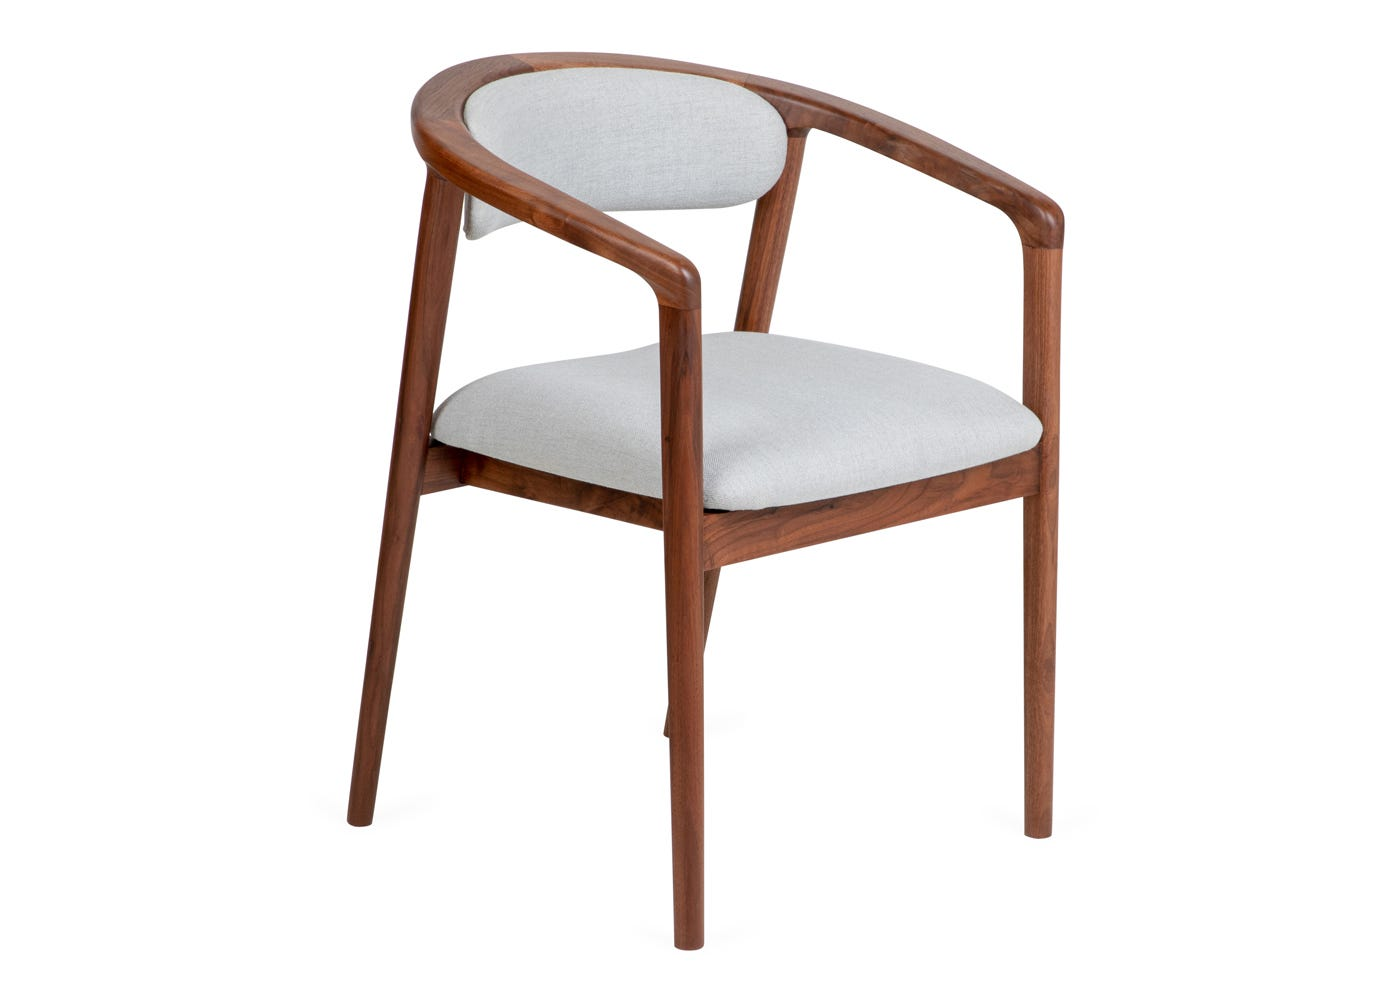 As shown Anais Dining Chair - Side profile.